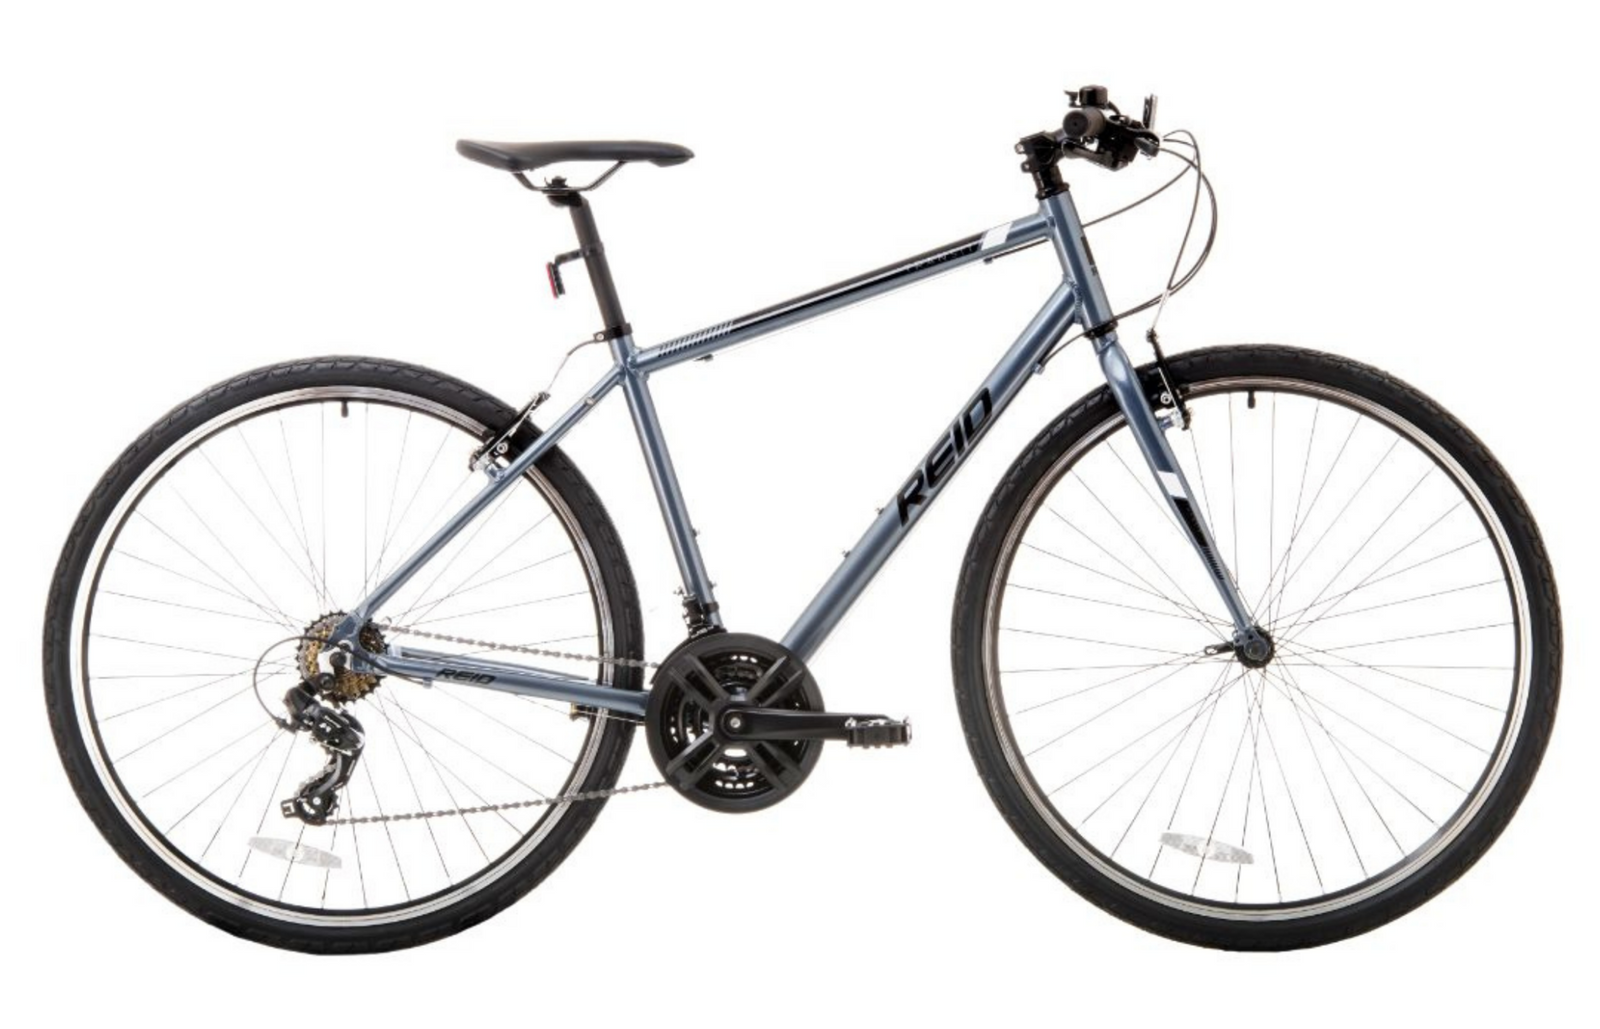 Transit Hybrid Commuter Bike in Grey with Shimano 7-speed gearing from Reid Cycles Australia